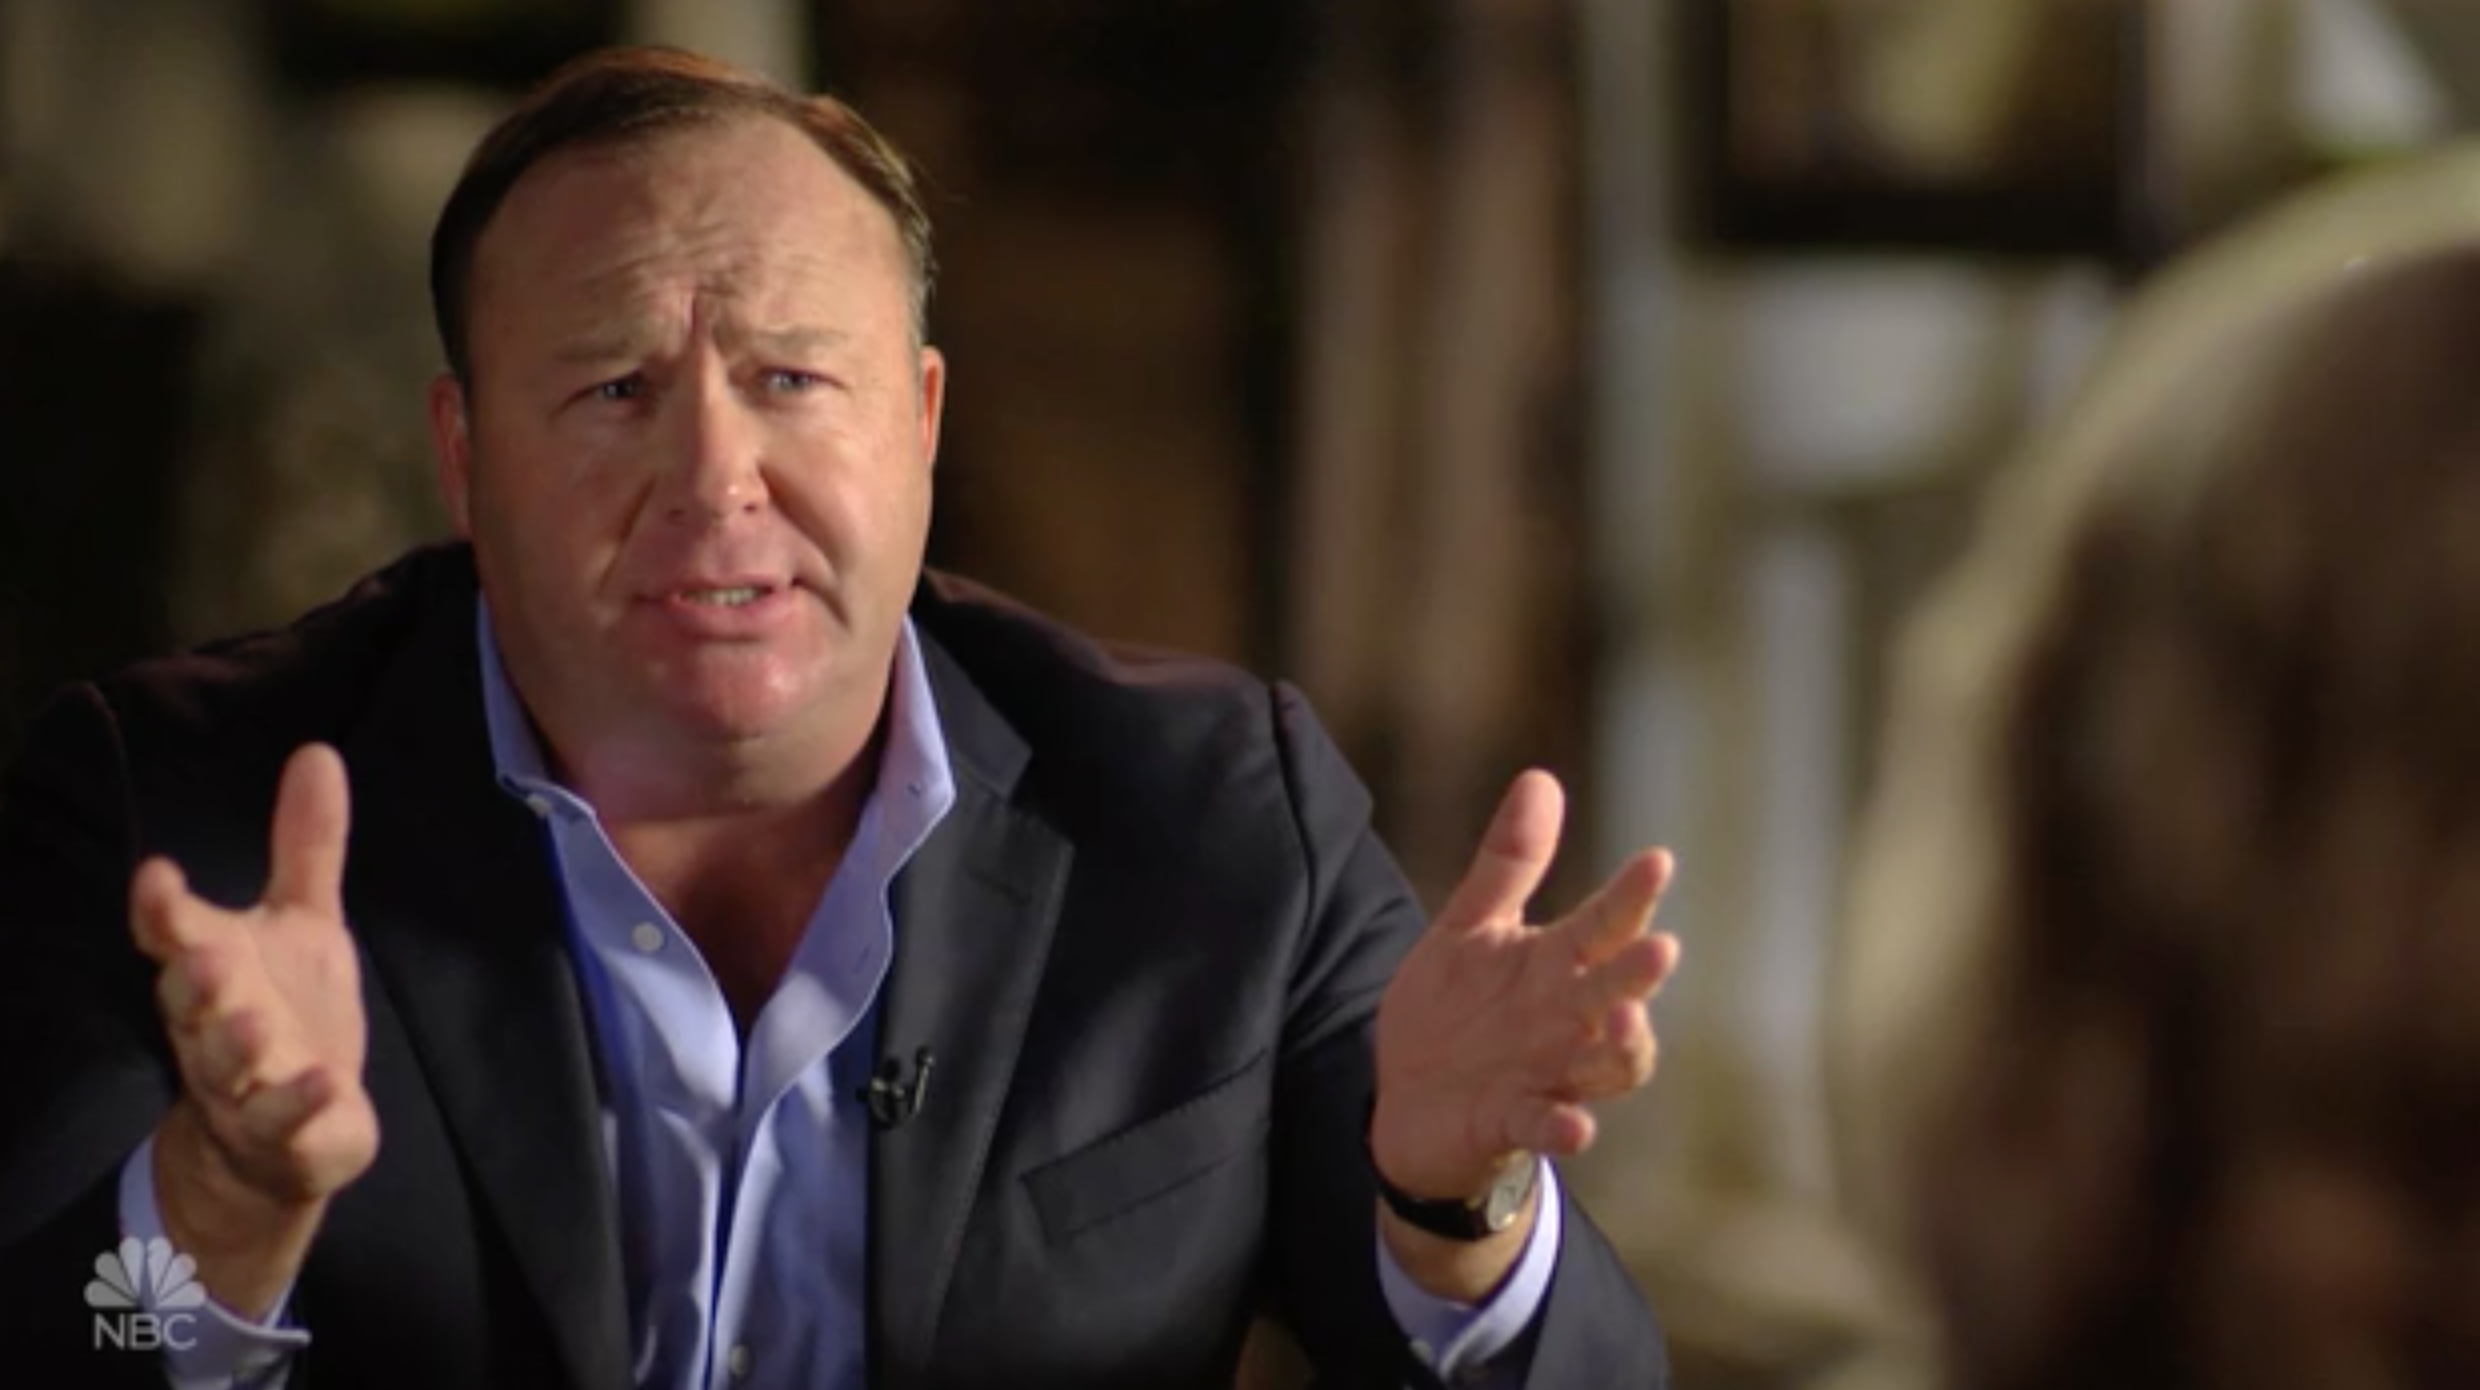 NBC's Megyn Kelly's interview with Alex Jones is shaping up to be a disaster